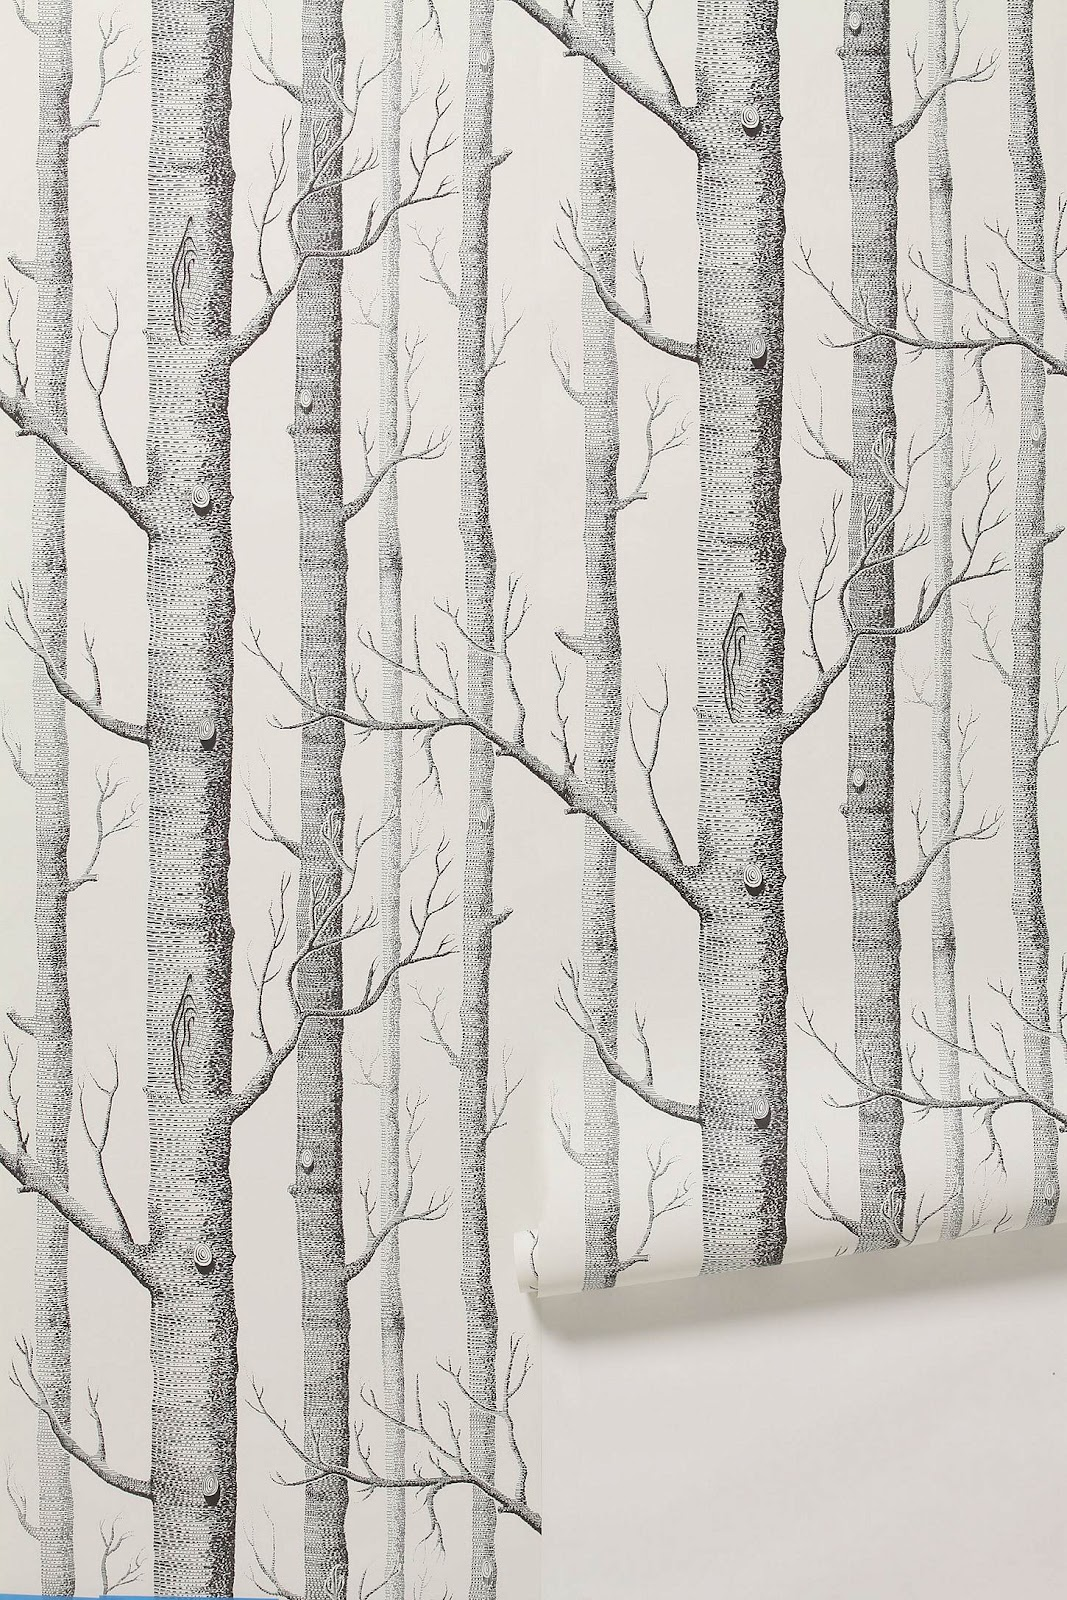 courtney lane: Patterned Wallpaper {De Gournay & Anthropologie}